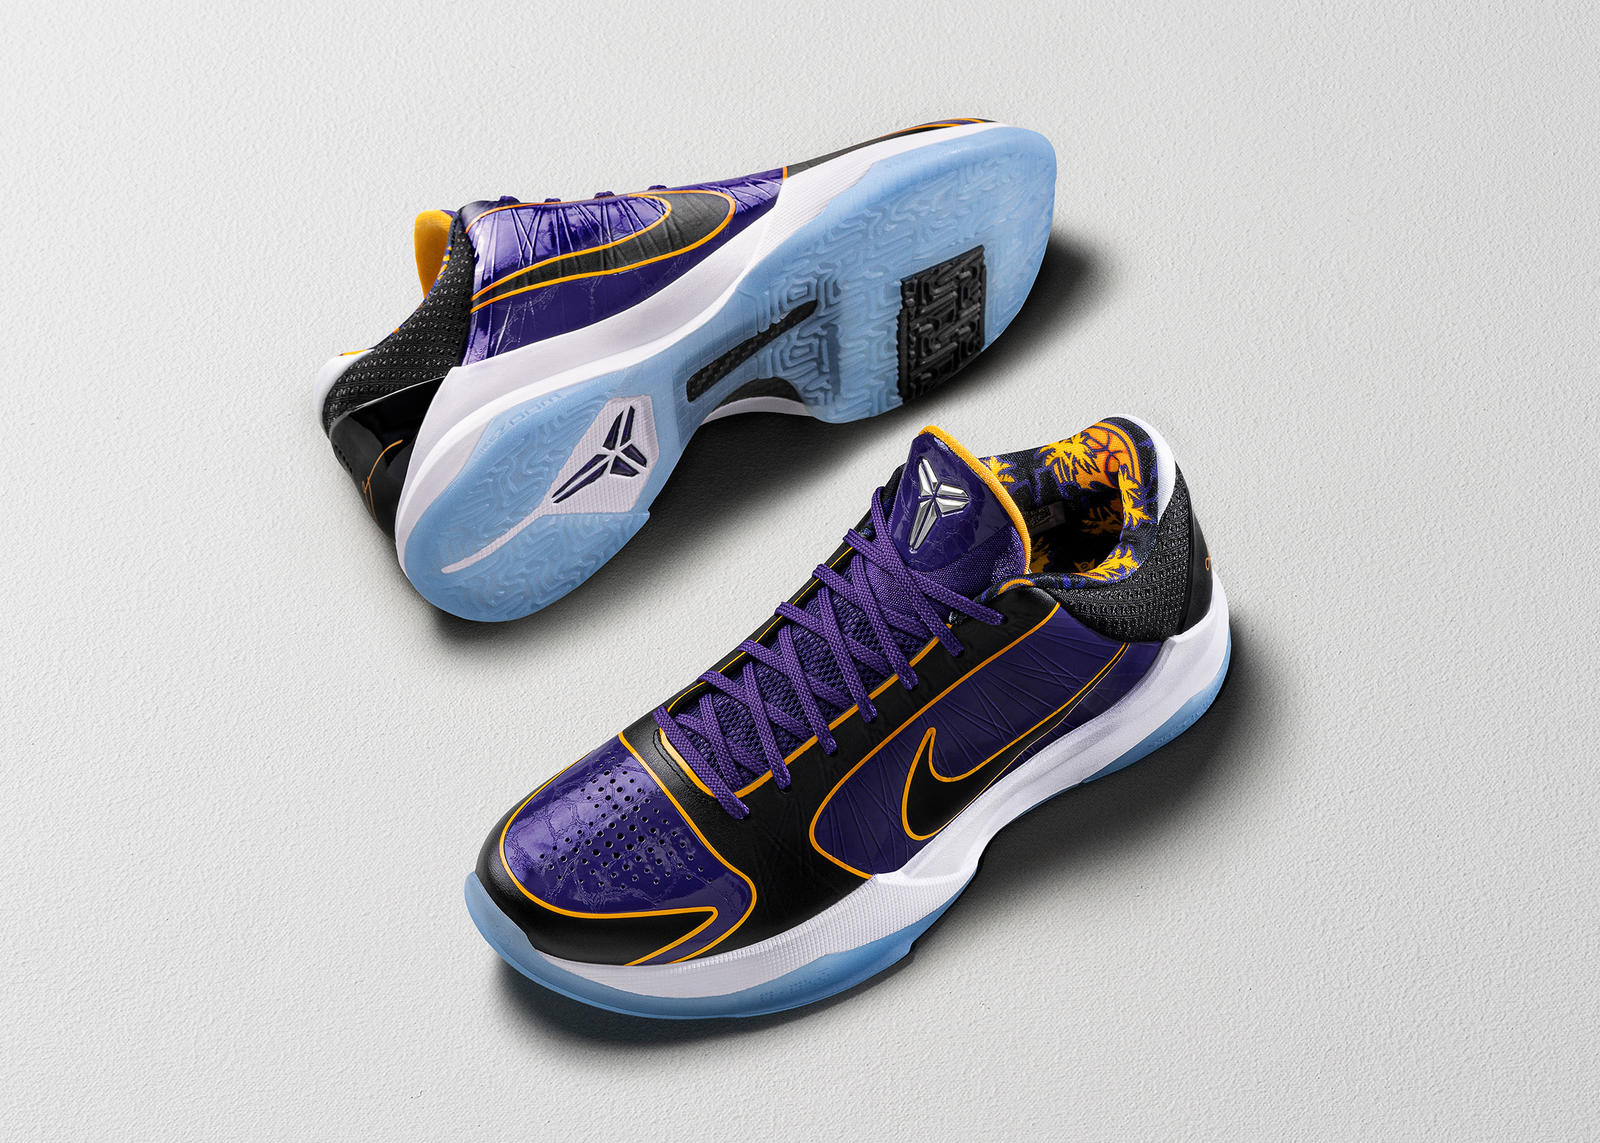 Kobe Bryant Mamba Week 2020 Footwear and Jersey 0